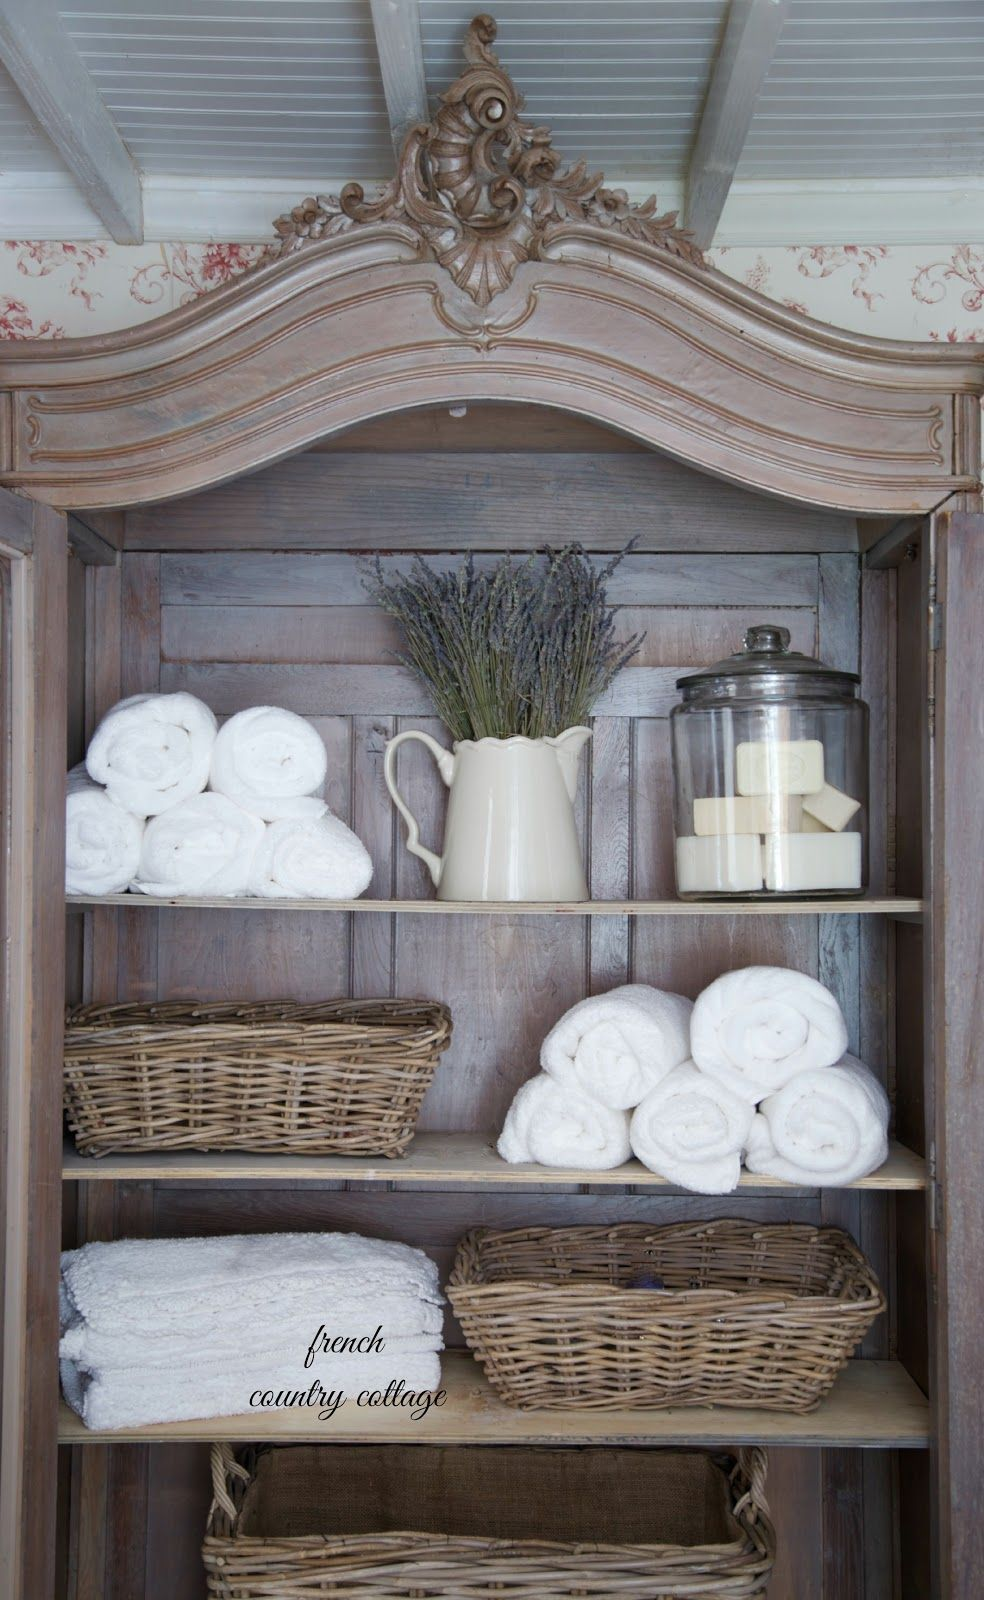 French country cottage crushing on baskets displays for French bathroom ideas